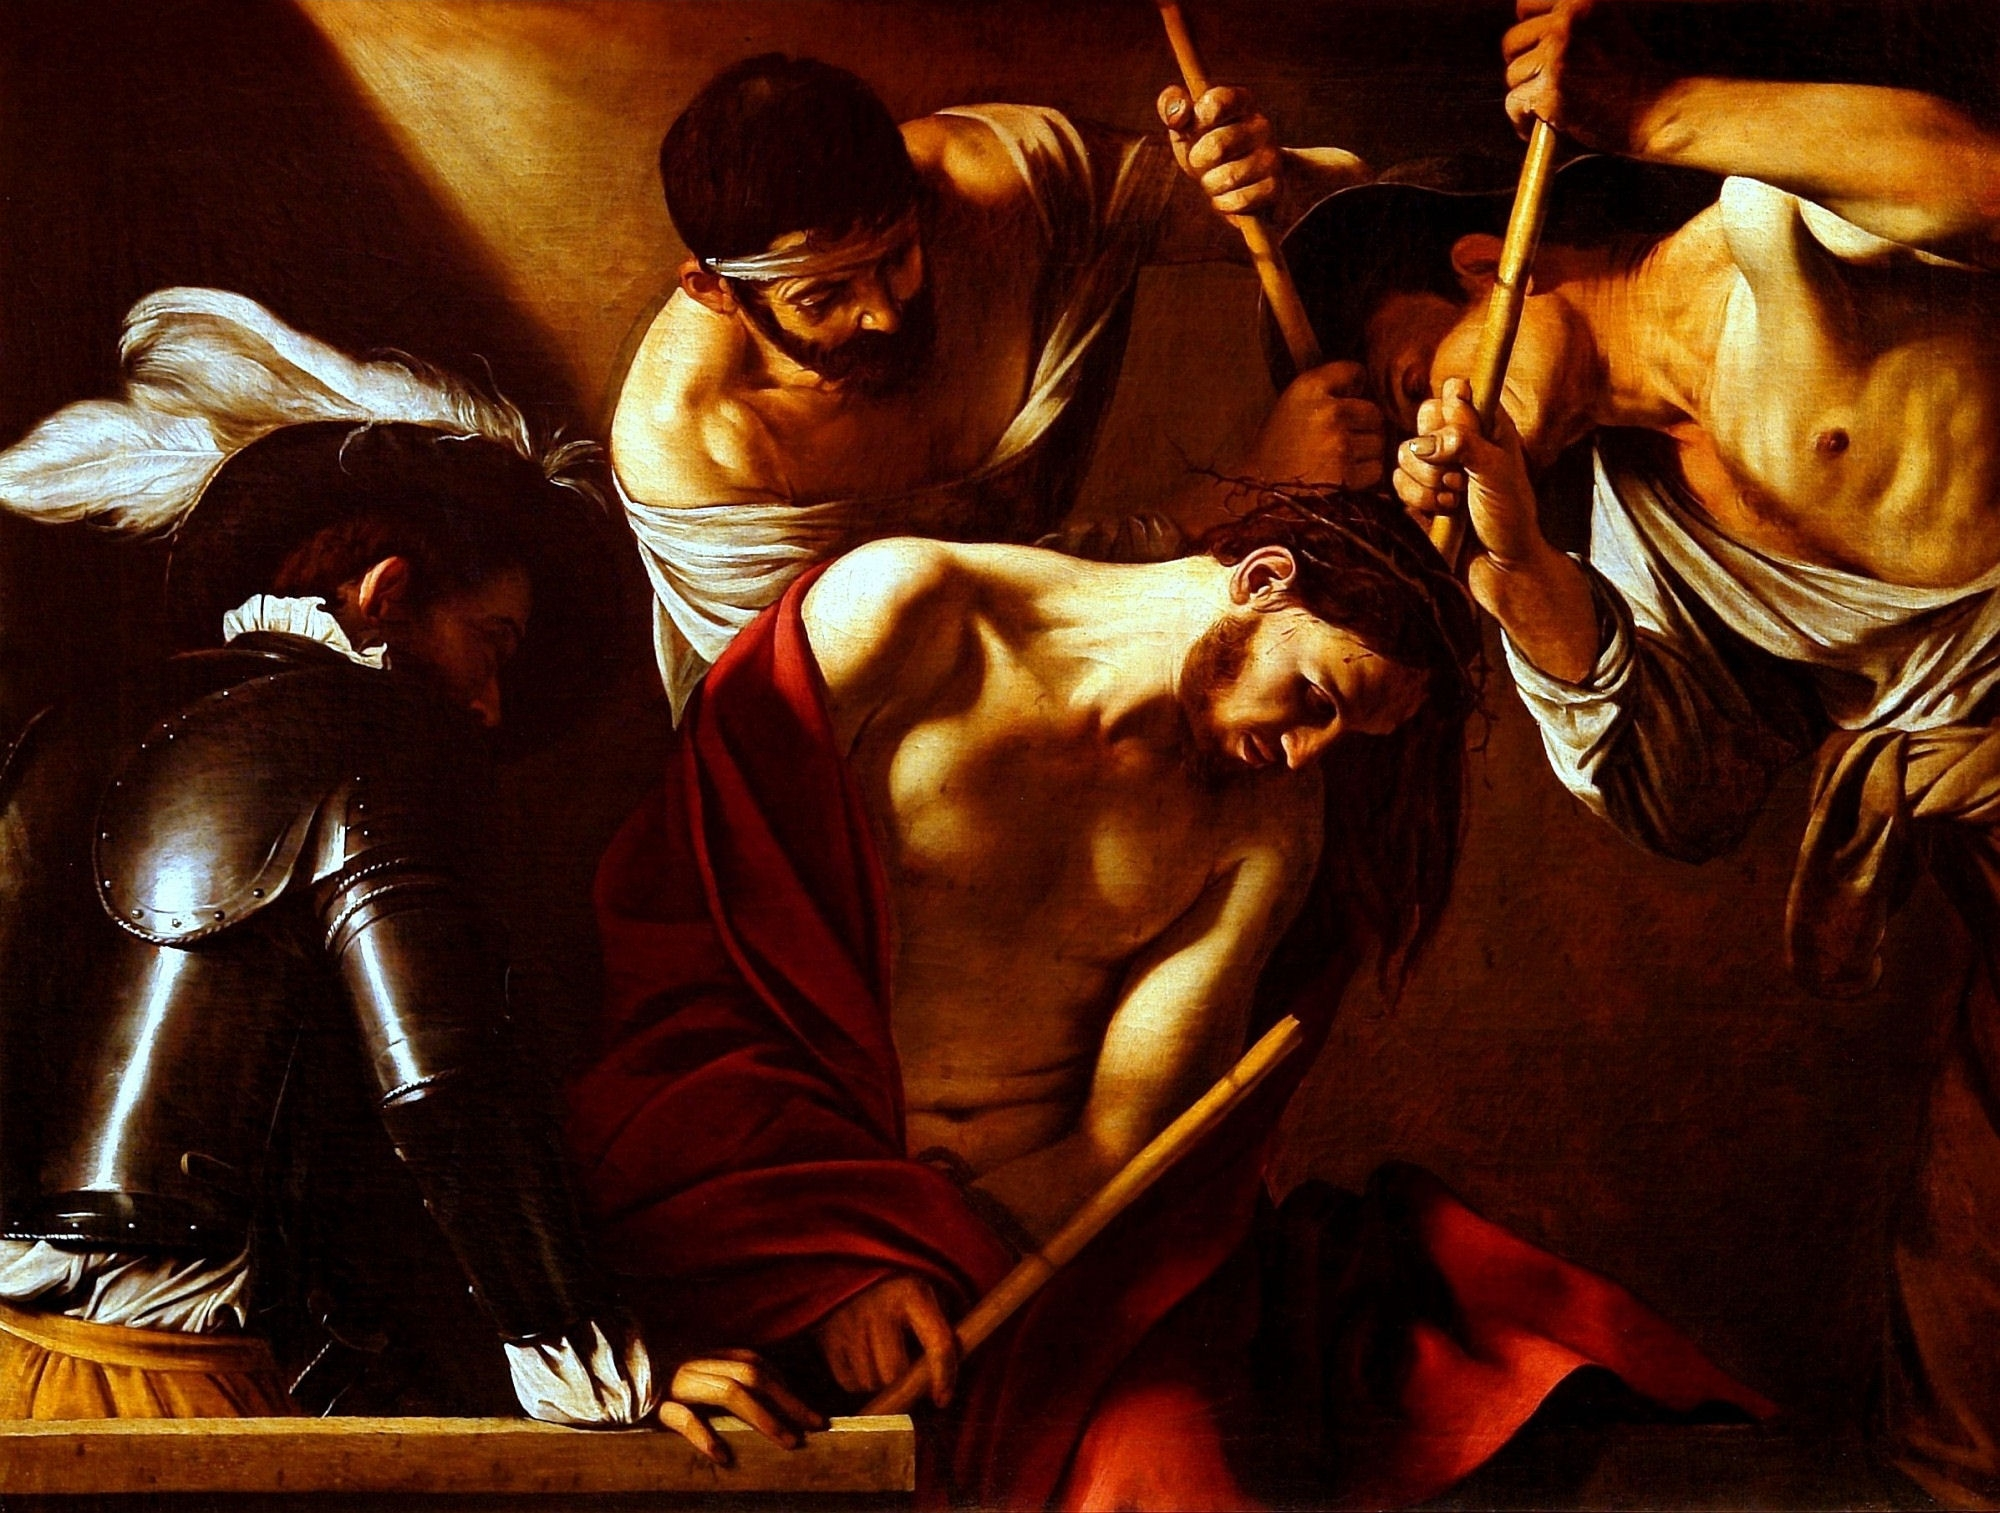 Crown of Thorns attributed to Michelangelo Merisi, Caravaggio (1602)